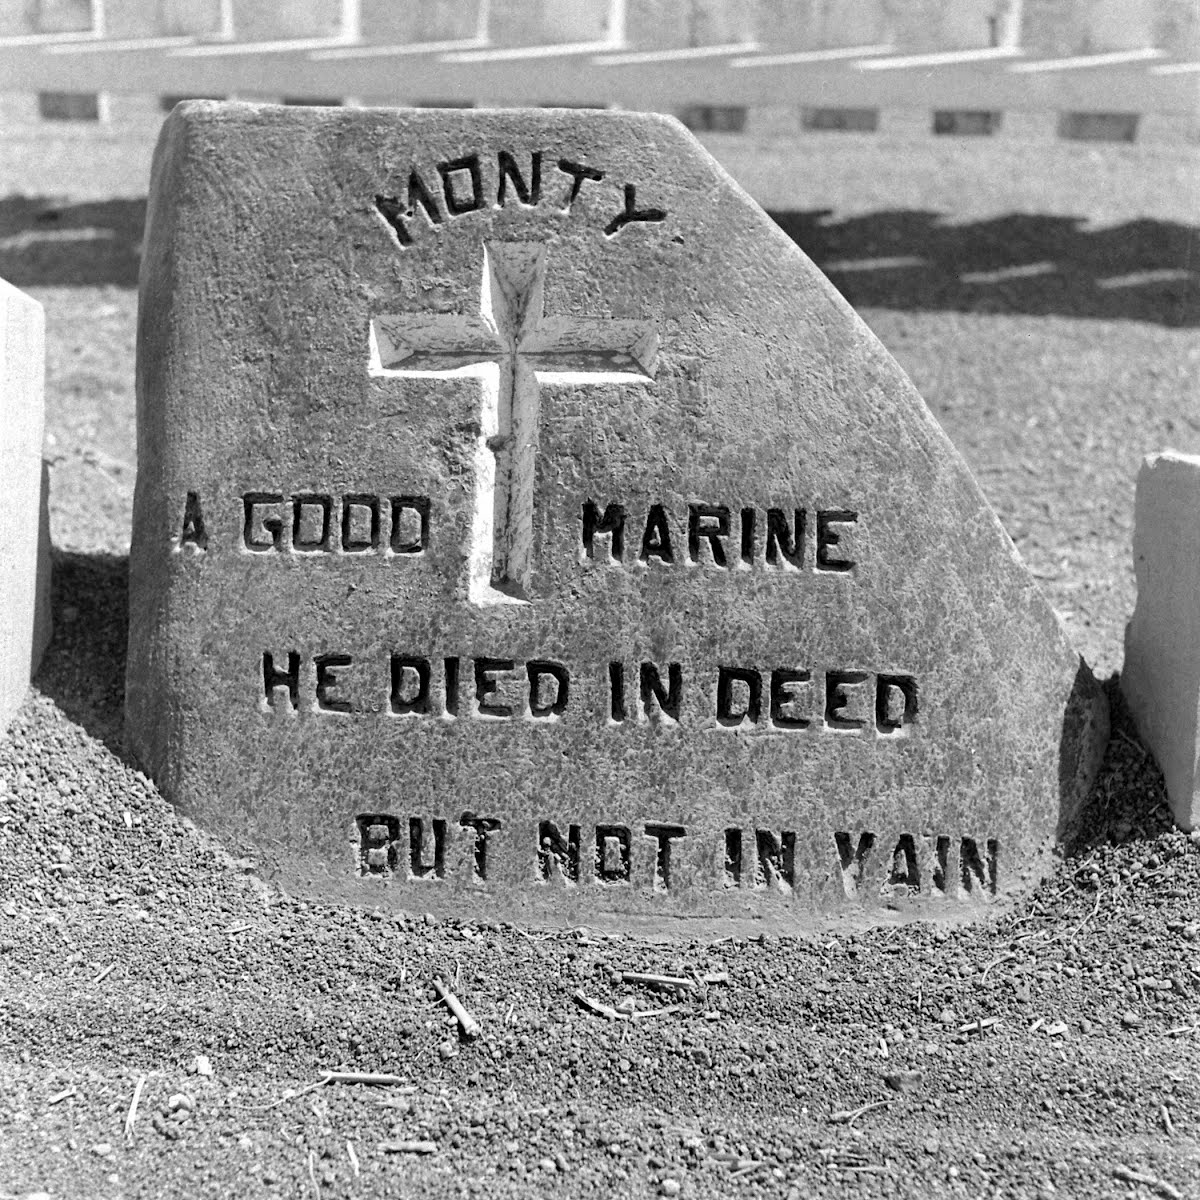 5Th Marines Iwo Jima Cemetery